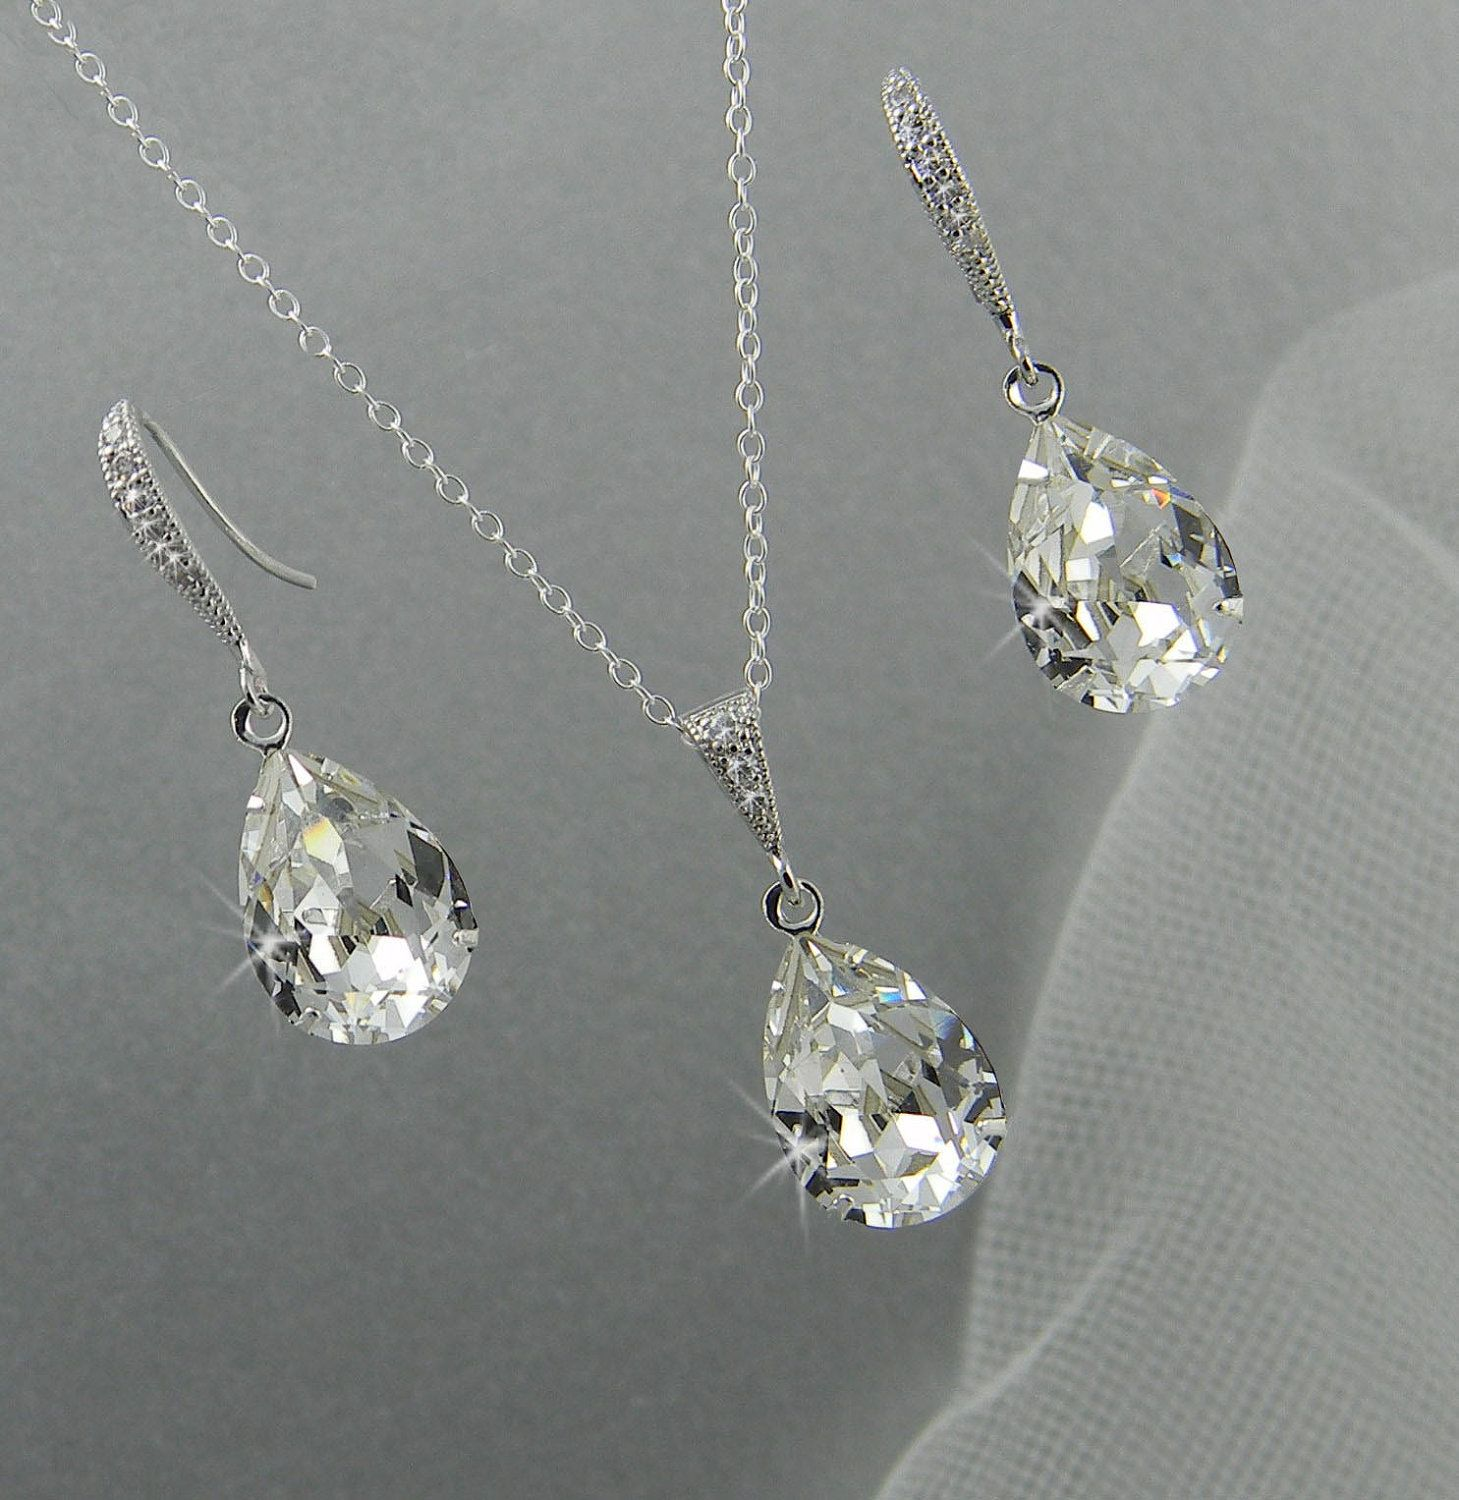 Bridal Jewelry Set, Crystal Pendant Earrings Necklace Jewelry Set , Wedding  Jewelry, Bridesmaids Jewelry Set, Small Crystal Drop Set